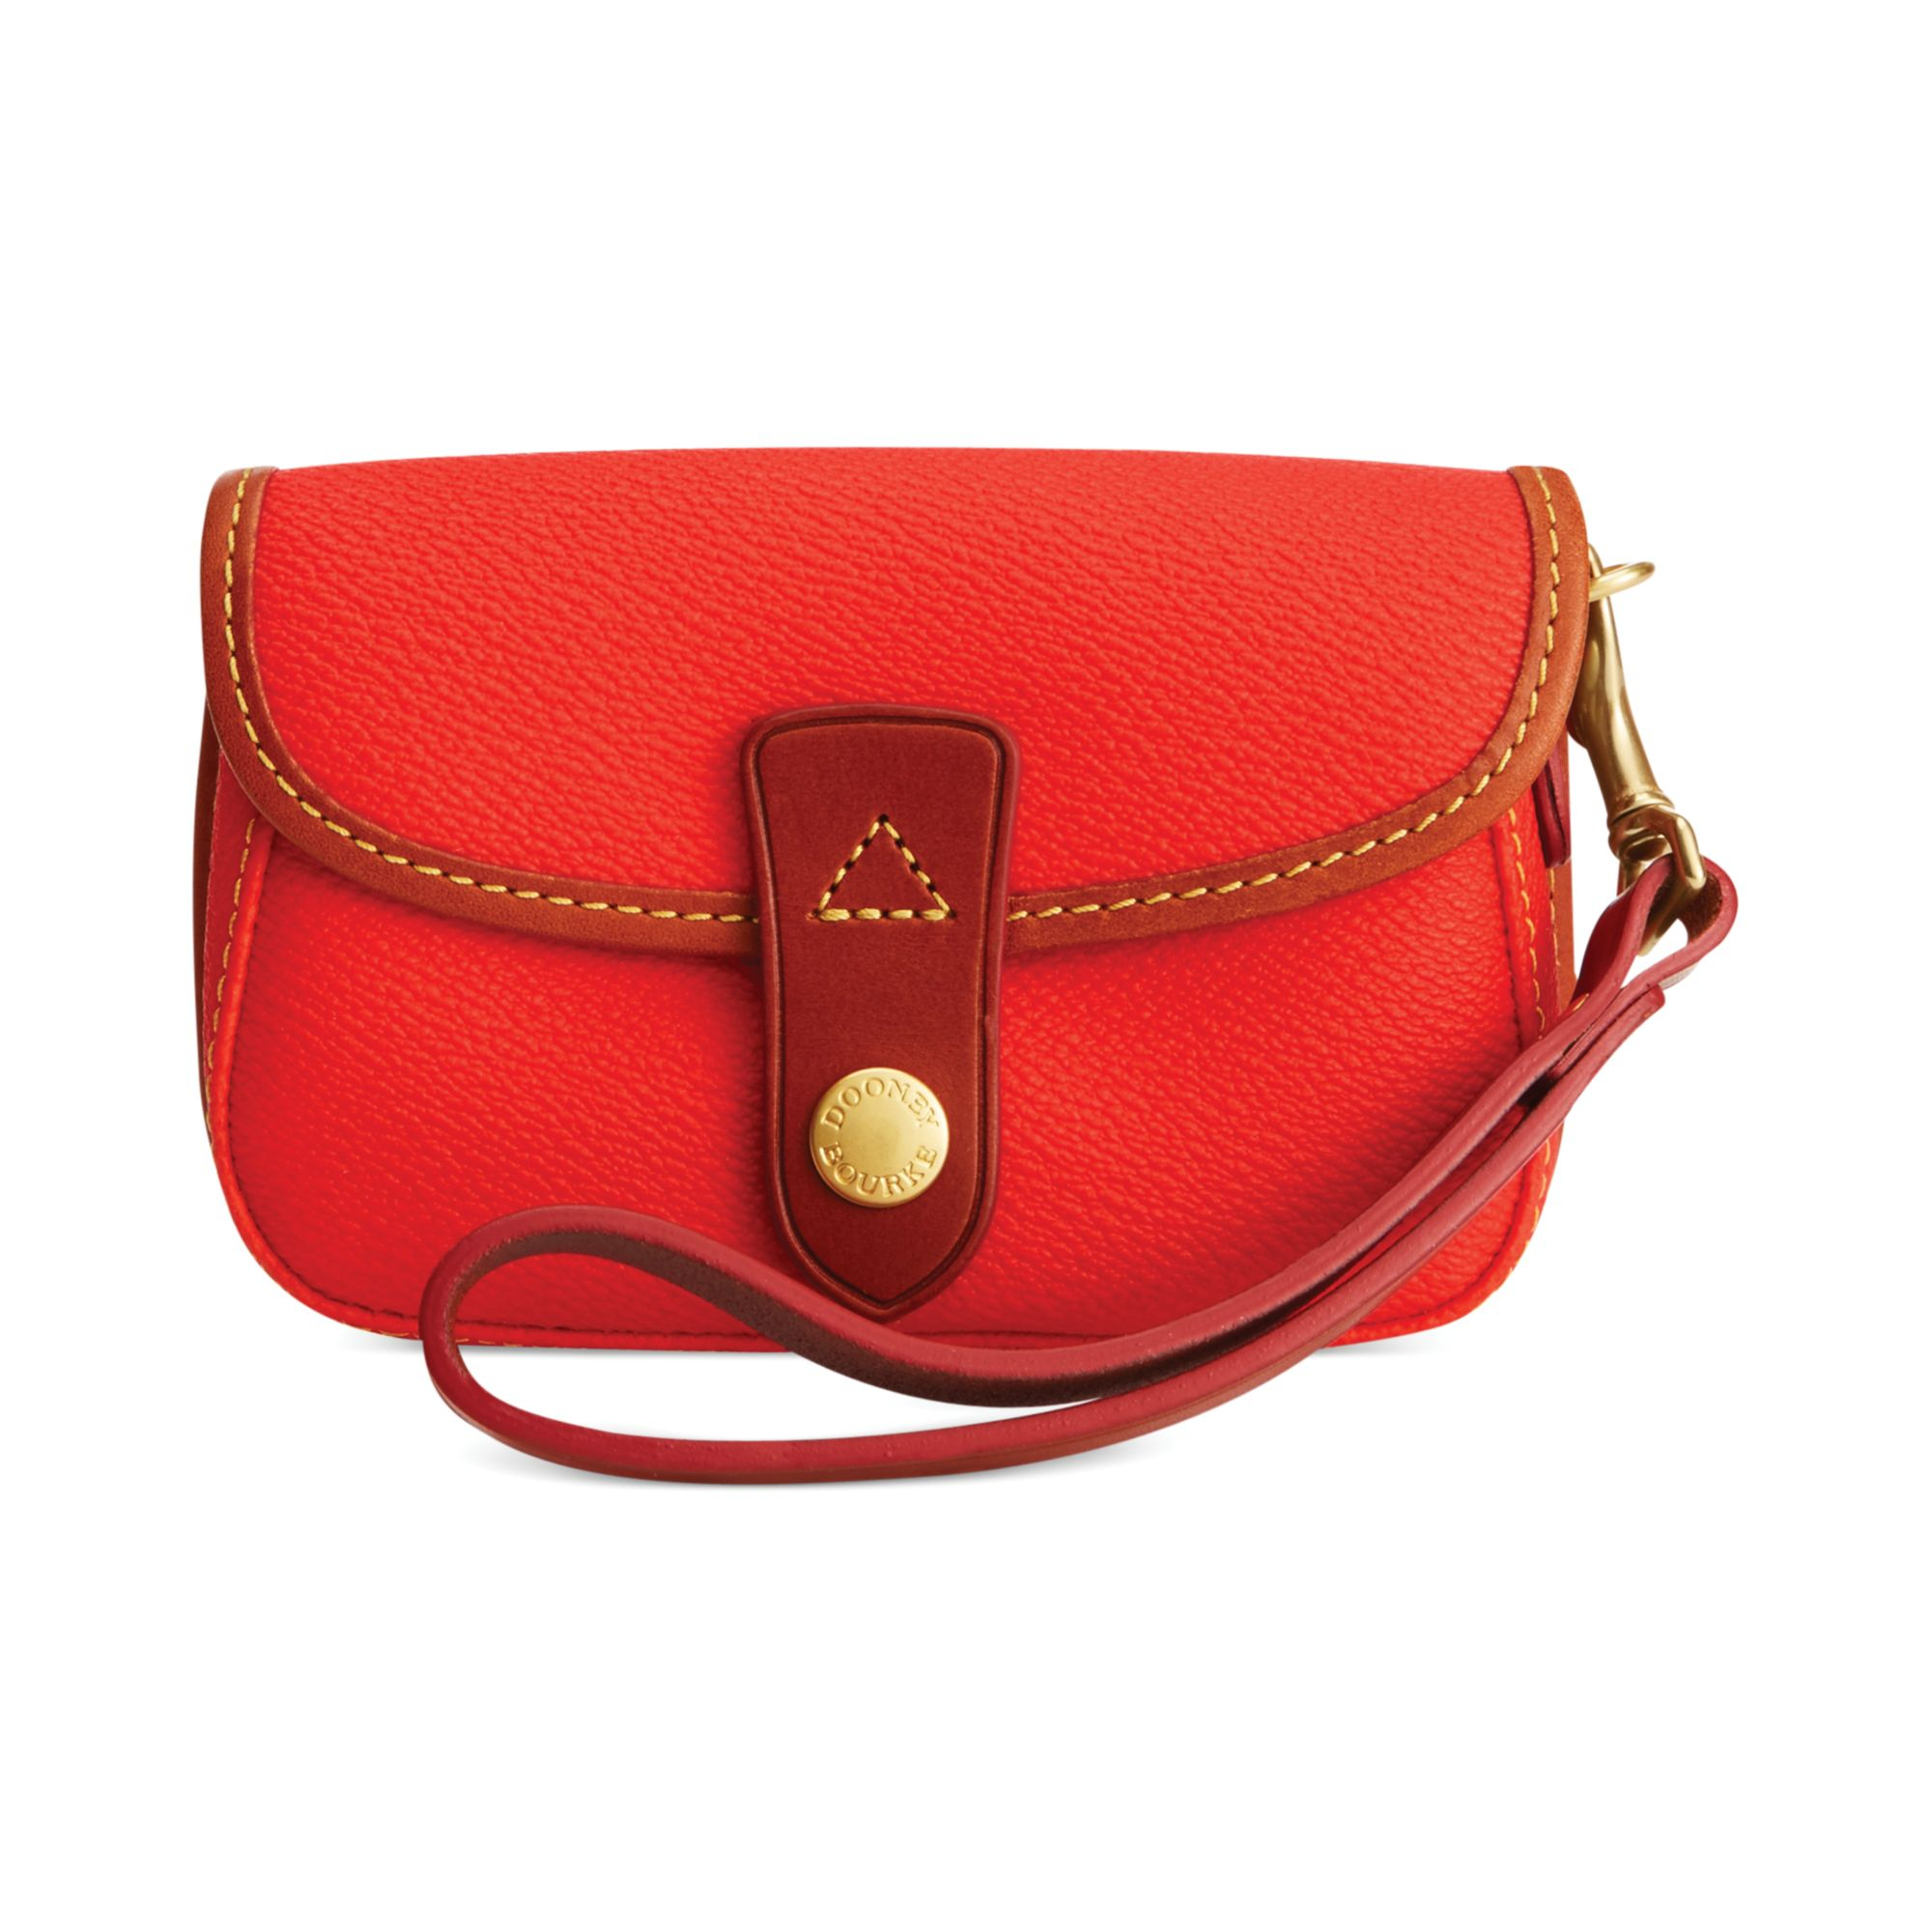 Dooney & Bourke is one of the most coveted brands in handbags, and you can satisfy your craving for cachet with Dooney & Bourke promo codes. Shop for refined leather purses, elegant rolling luggage, classic briefcases and beautiful wallets – all made with Dooney & Bourke's legendary attention to detail.